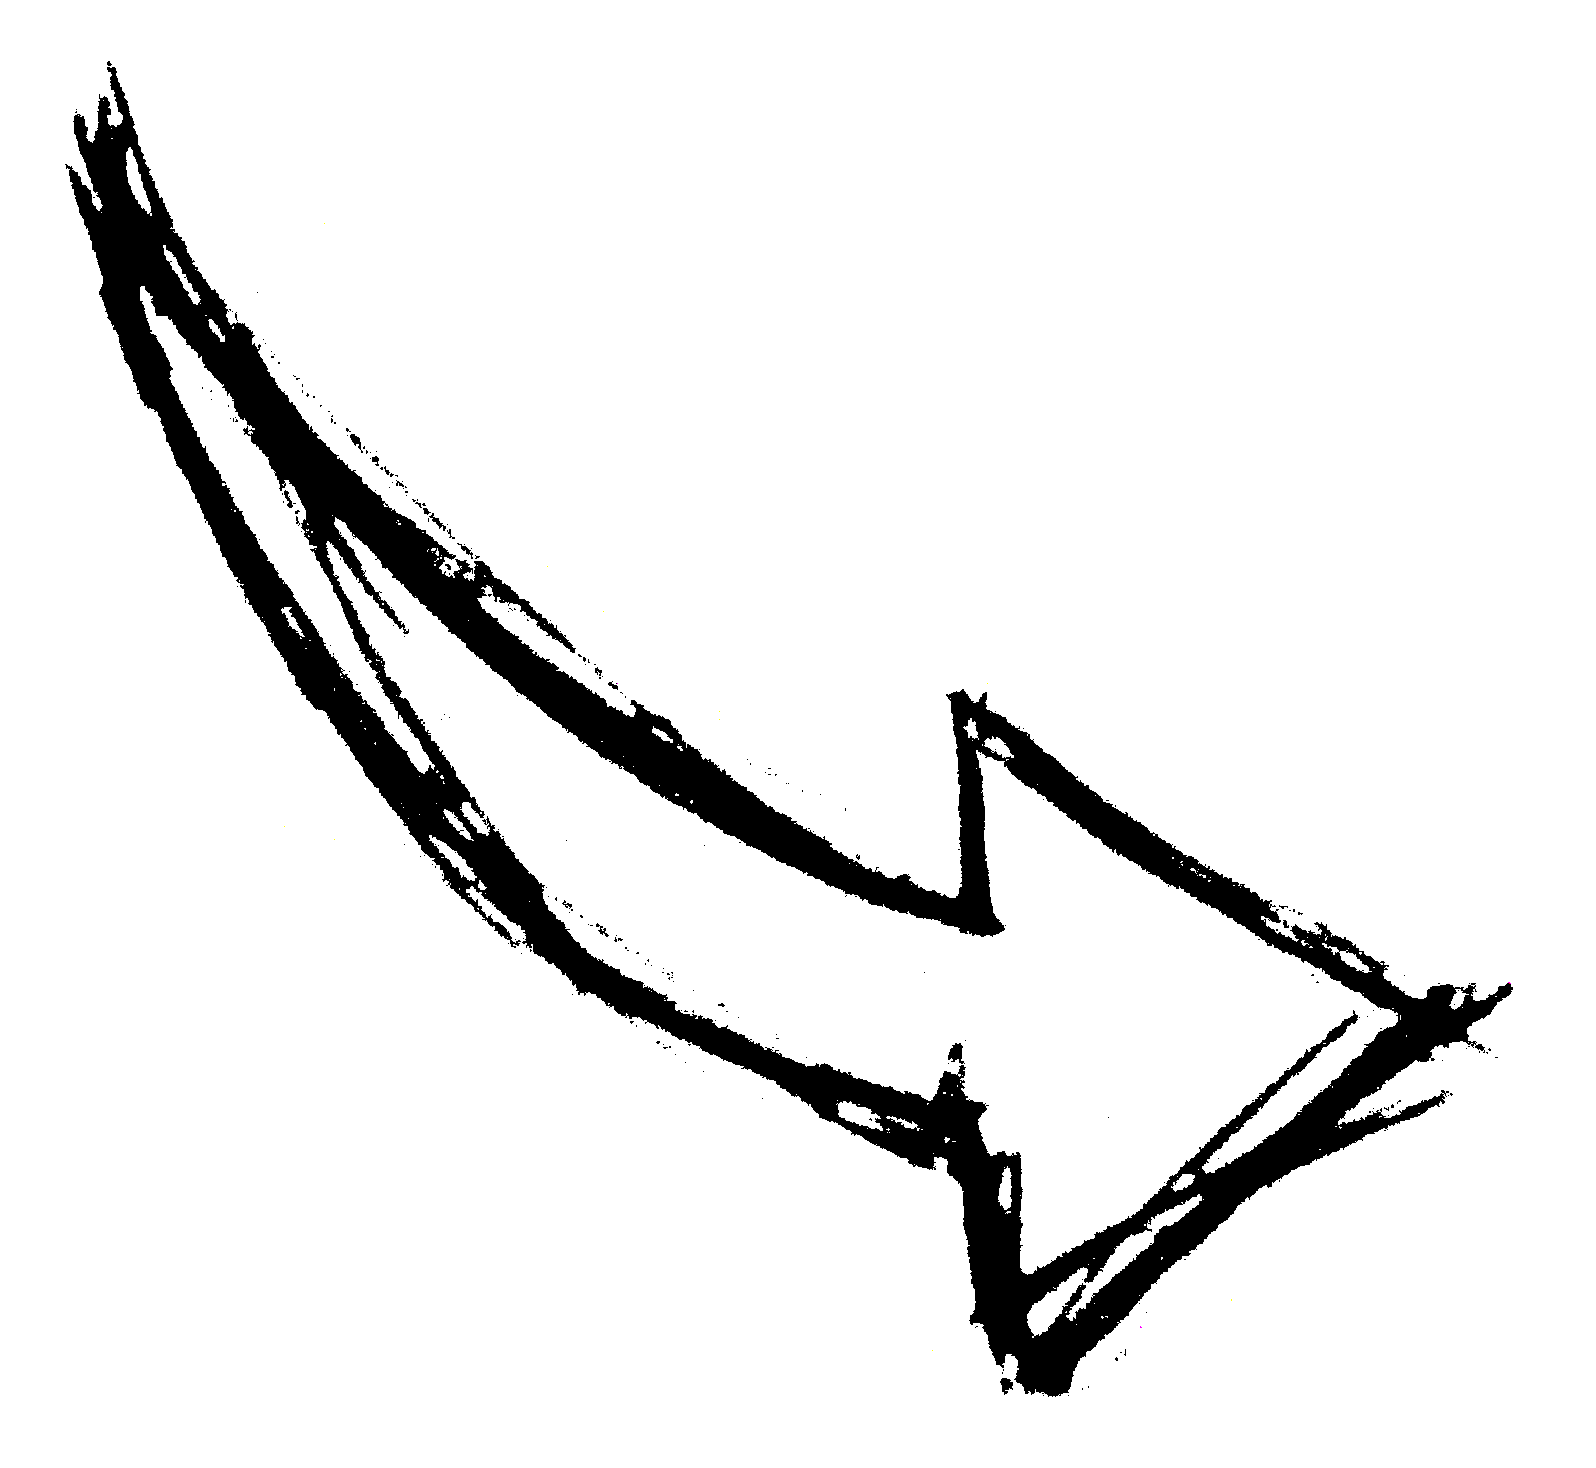 Hand drawn arrow png. Arrows image transparent onlygfx